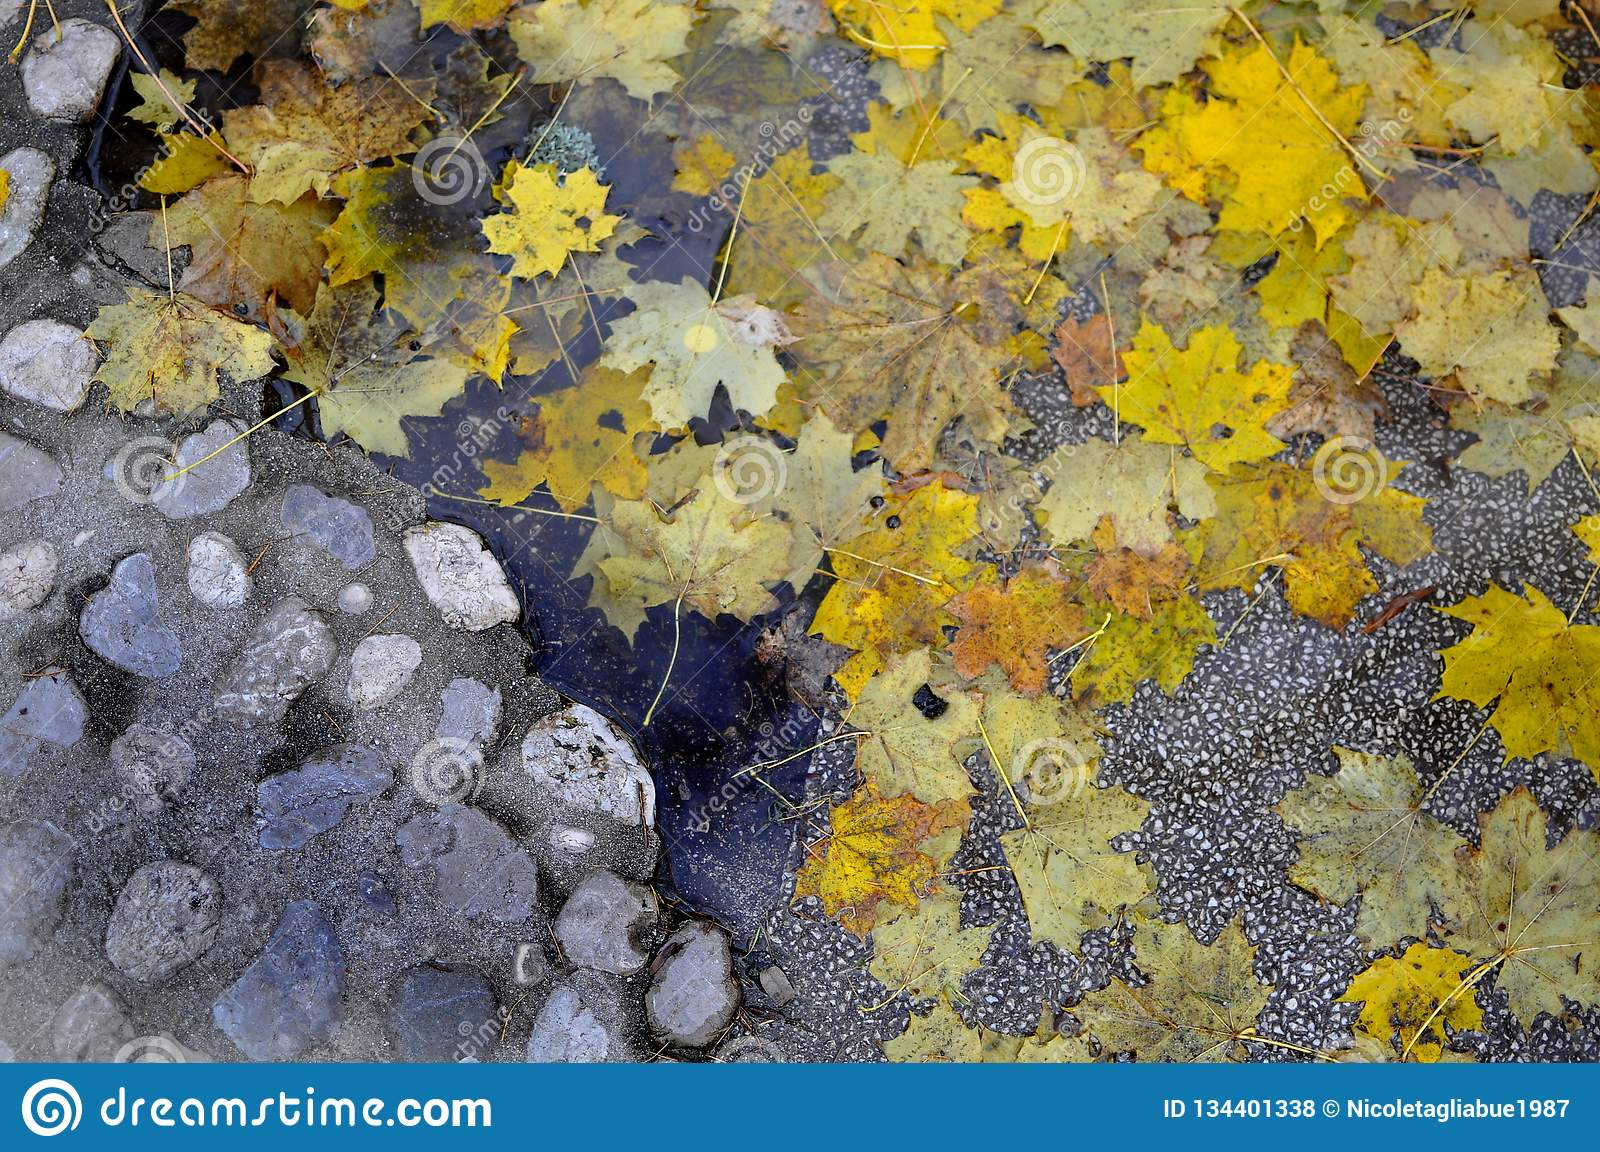 Old cobblestone street with autumn yellow leaves and muddy puddle - background autumn fall humid concept - life-soft/ death-hard